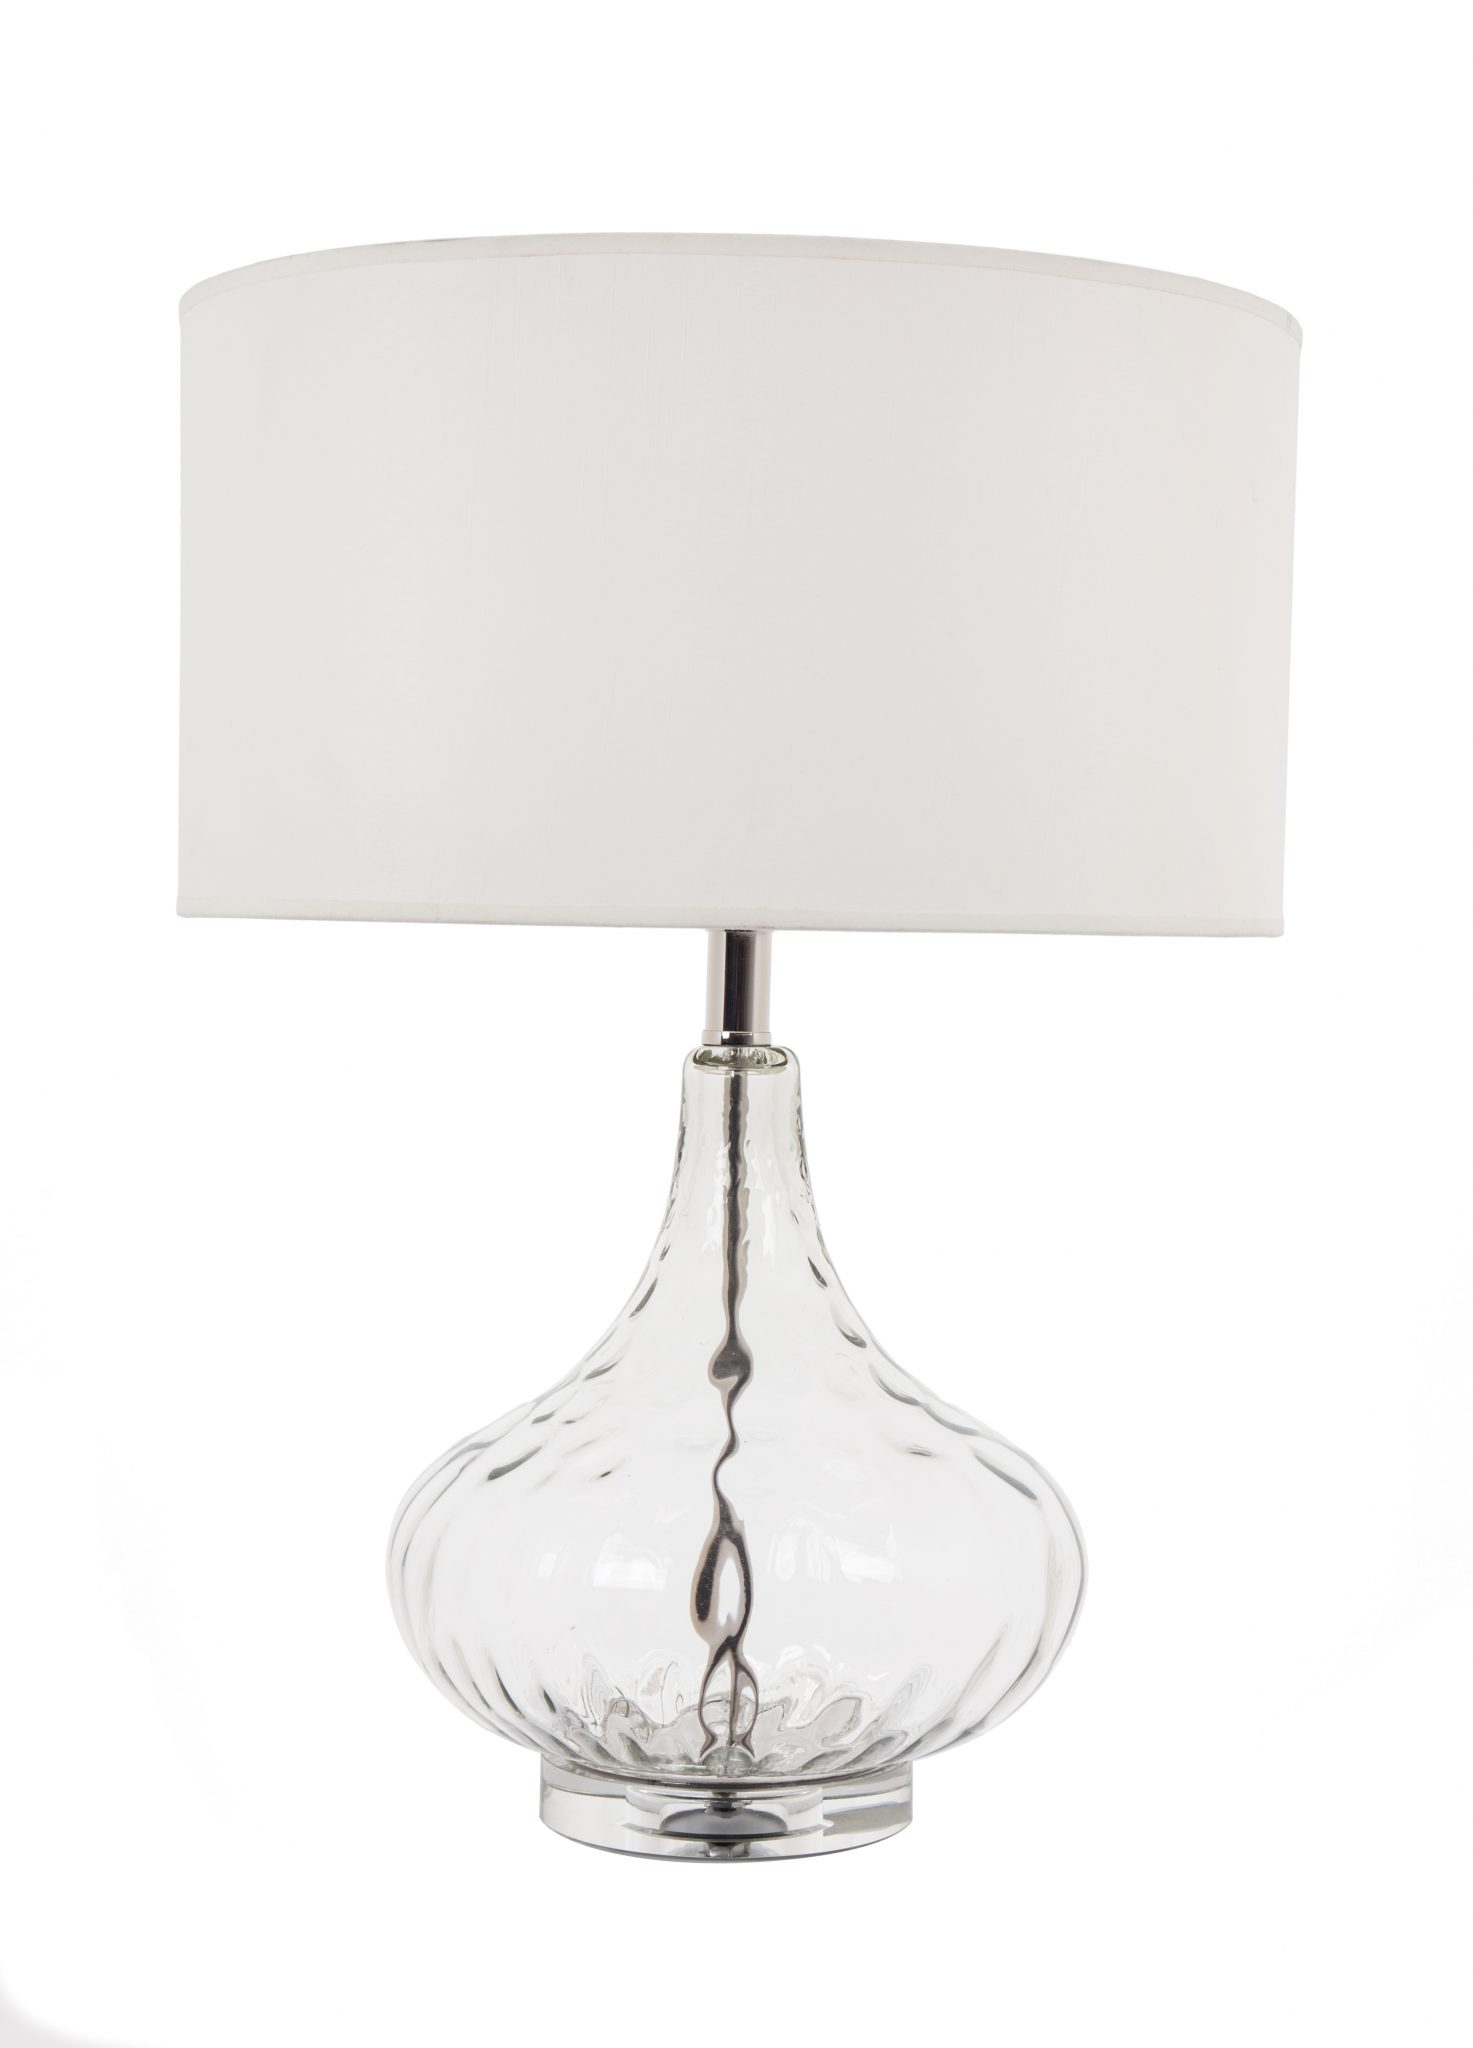 CONTI GLASS TABLE LAMP WITH SHADE-0